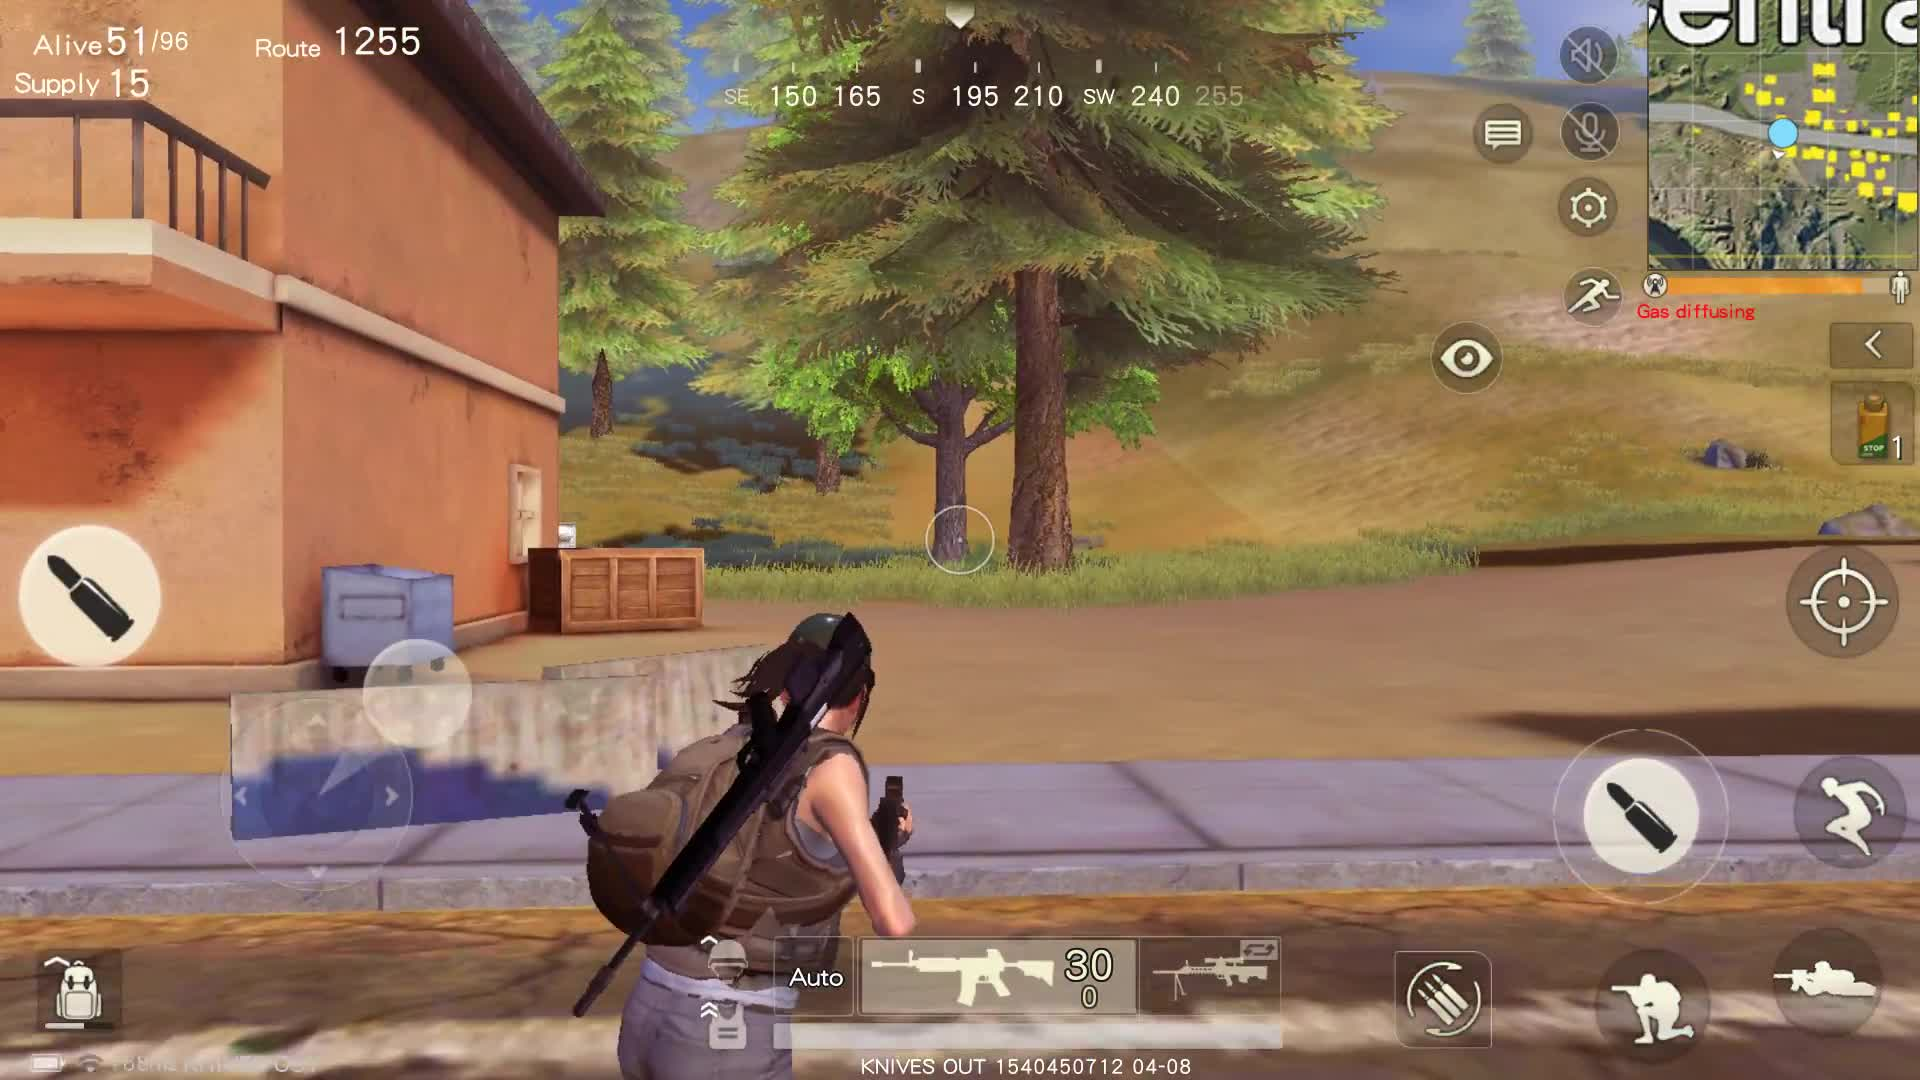 Knives Out Android Gameplay 2